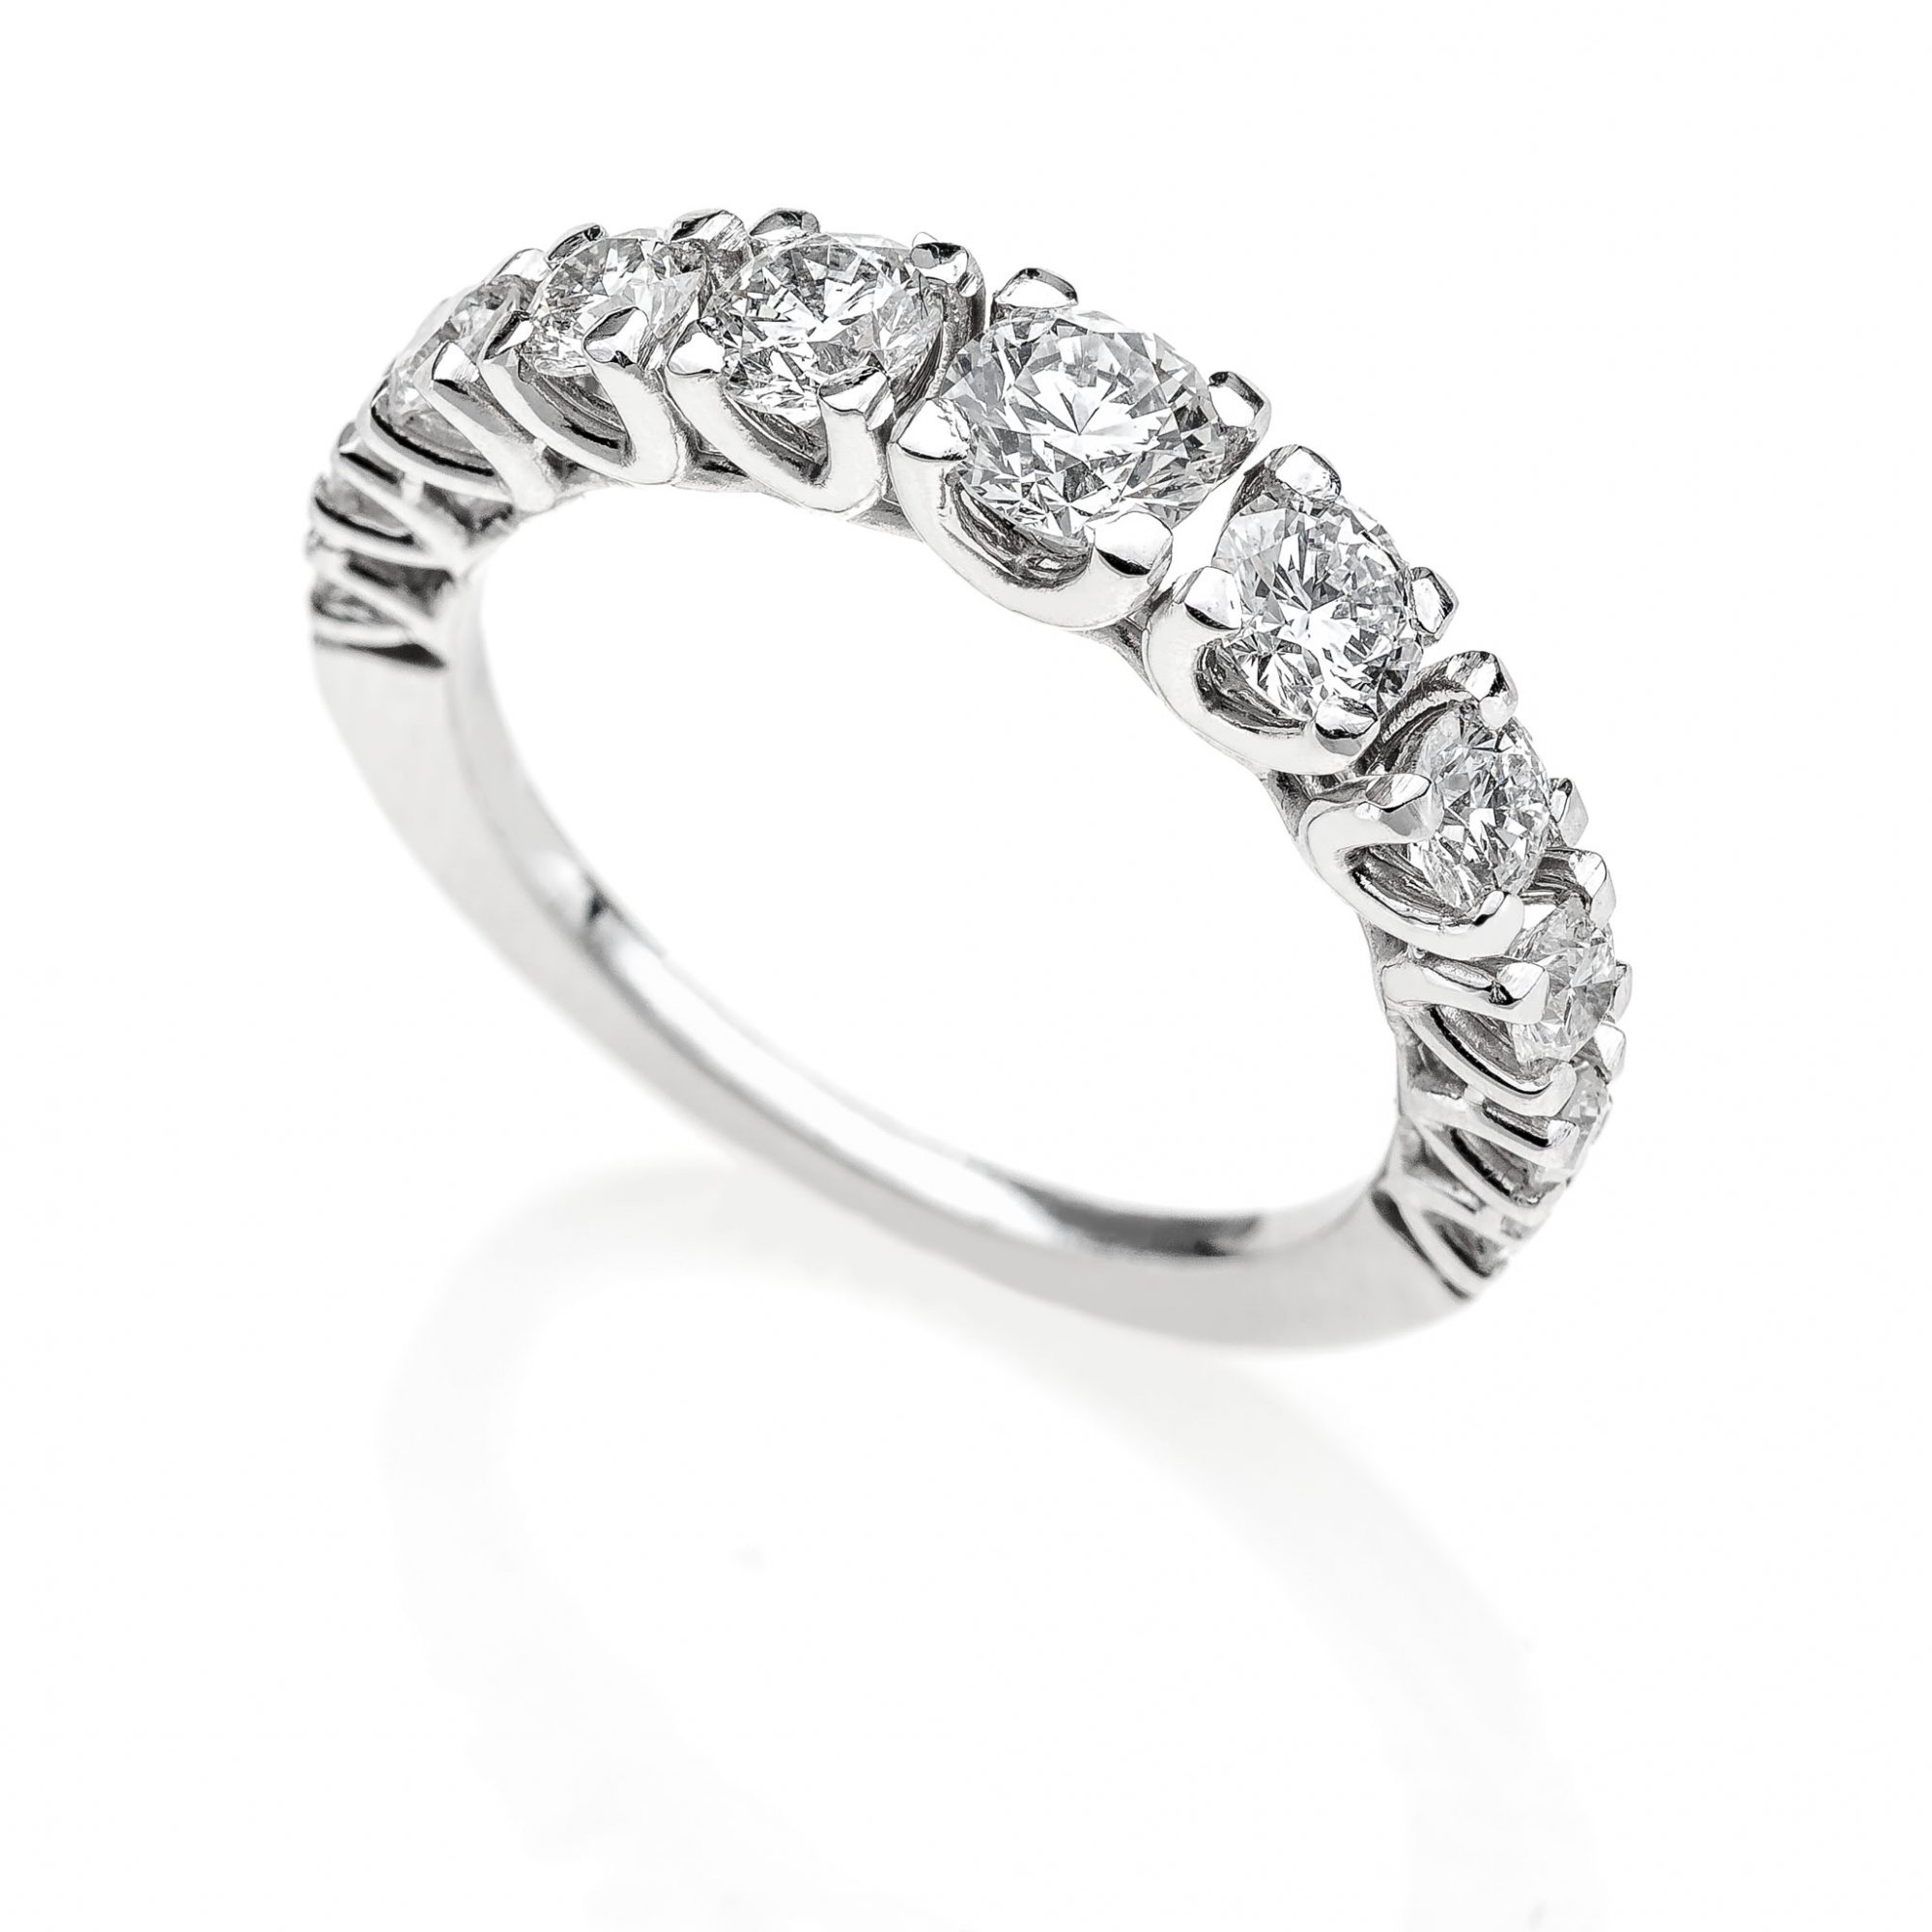 18 KT white gold ring with round brilliant cut diamonds ct.1.20 VS2 G color